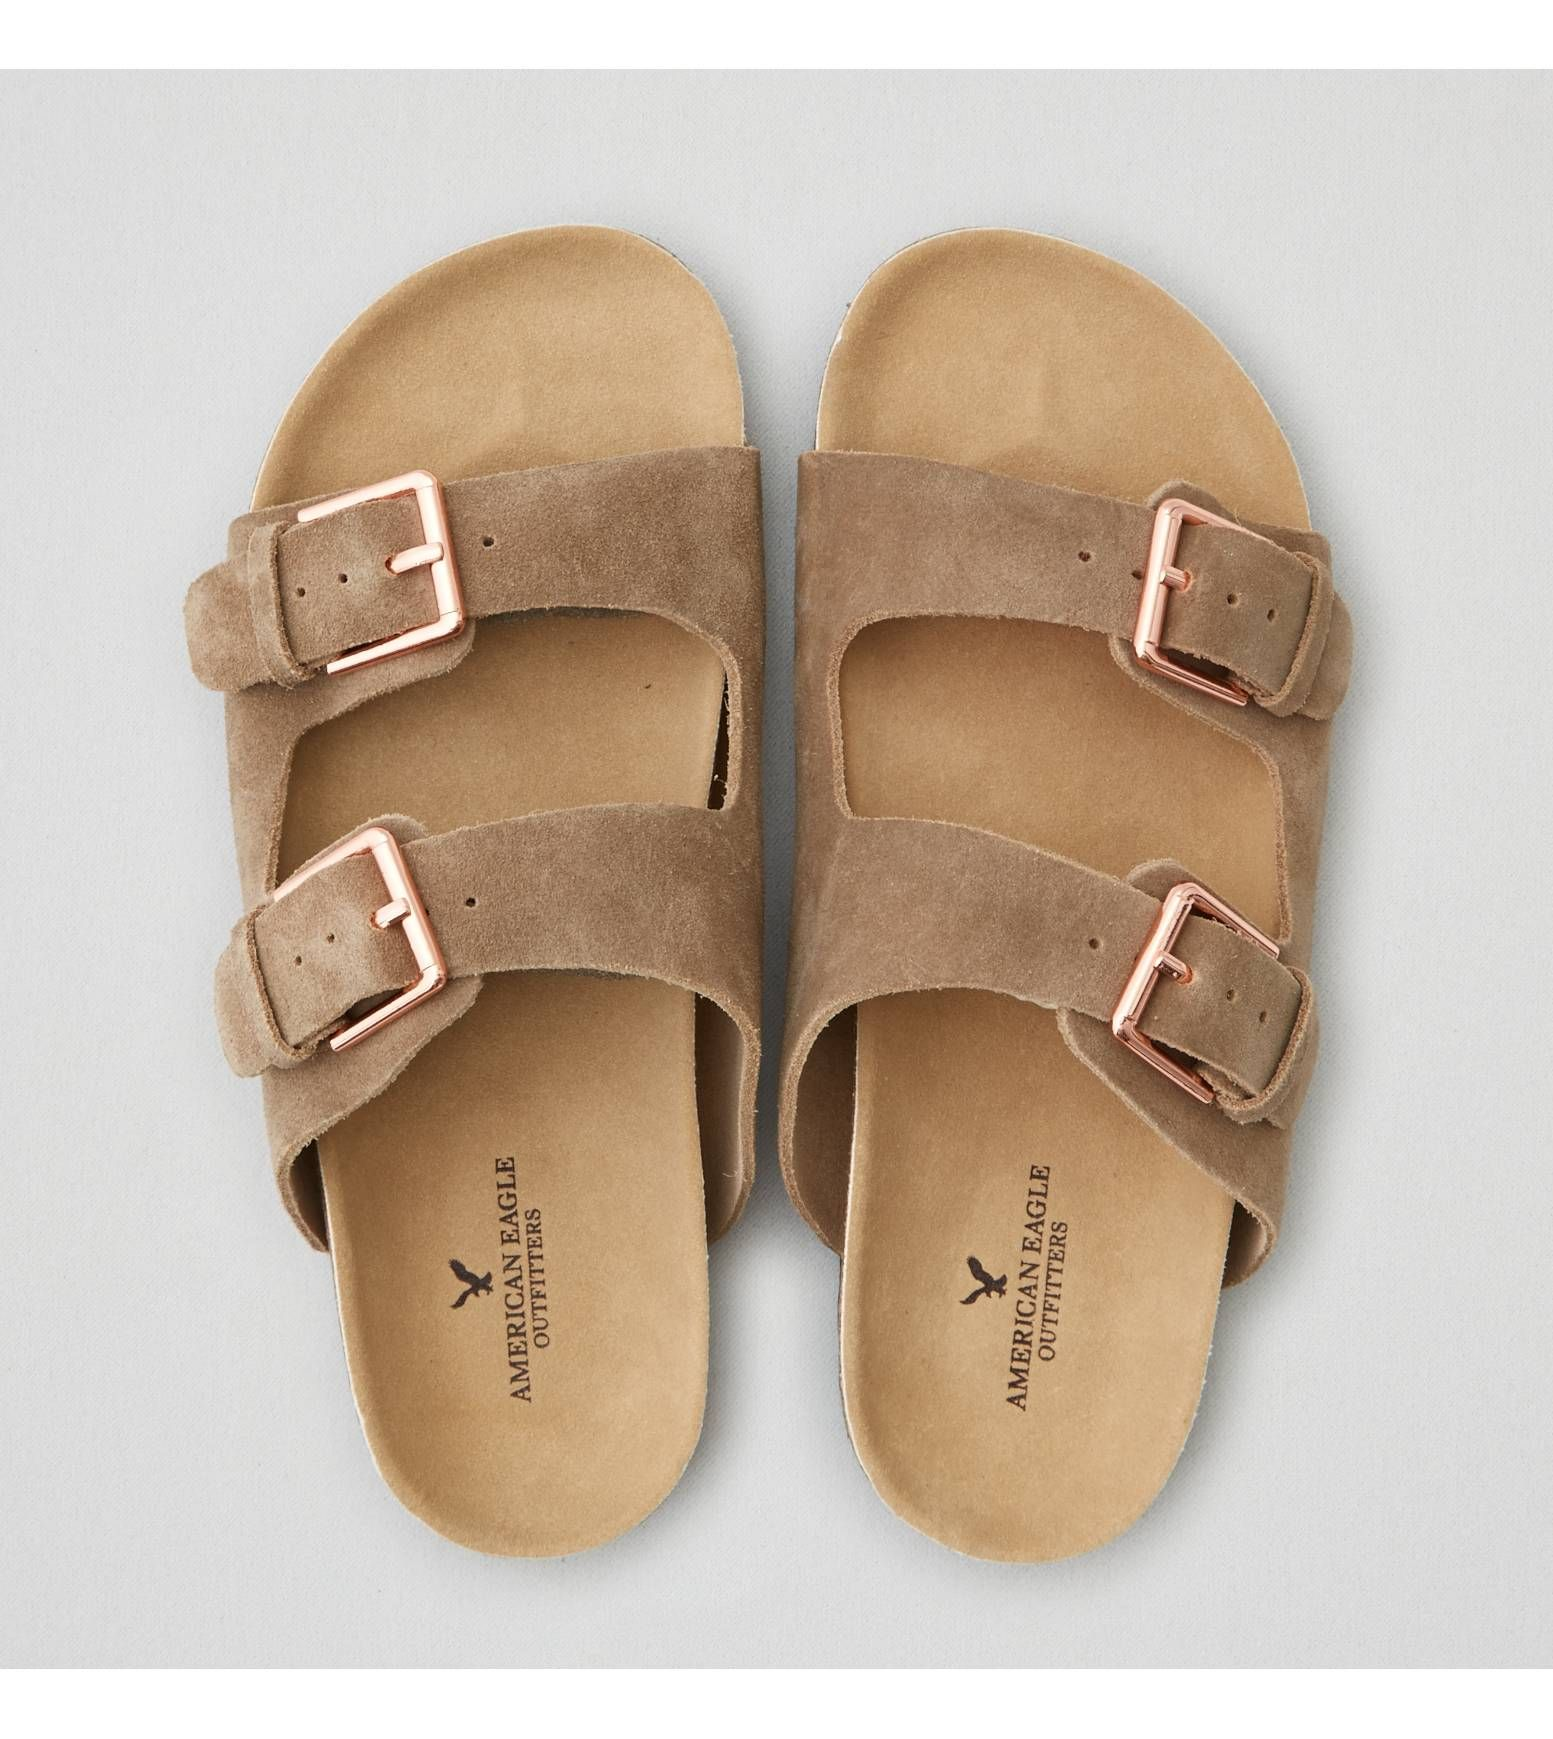 Taupe AEO Double Buckle Sandal | Accessories & shoes in 2019